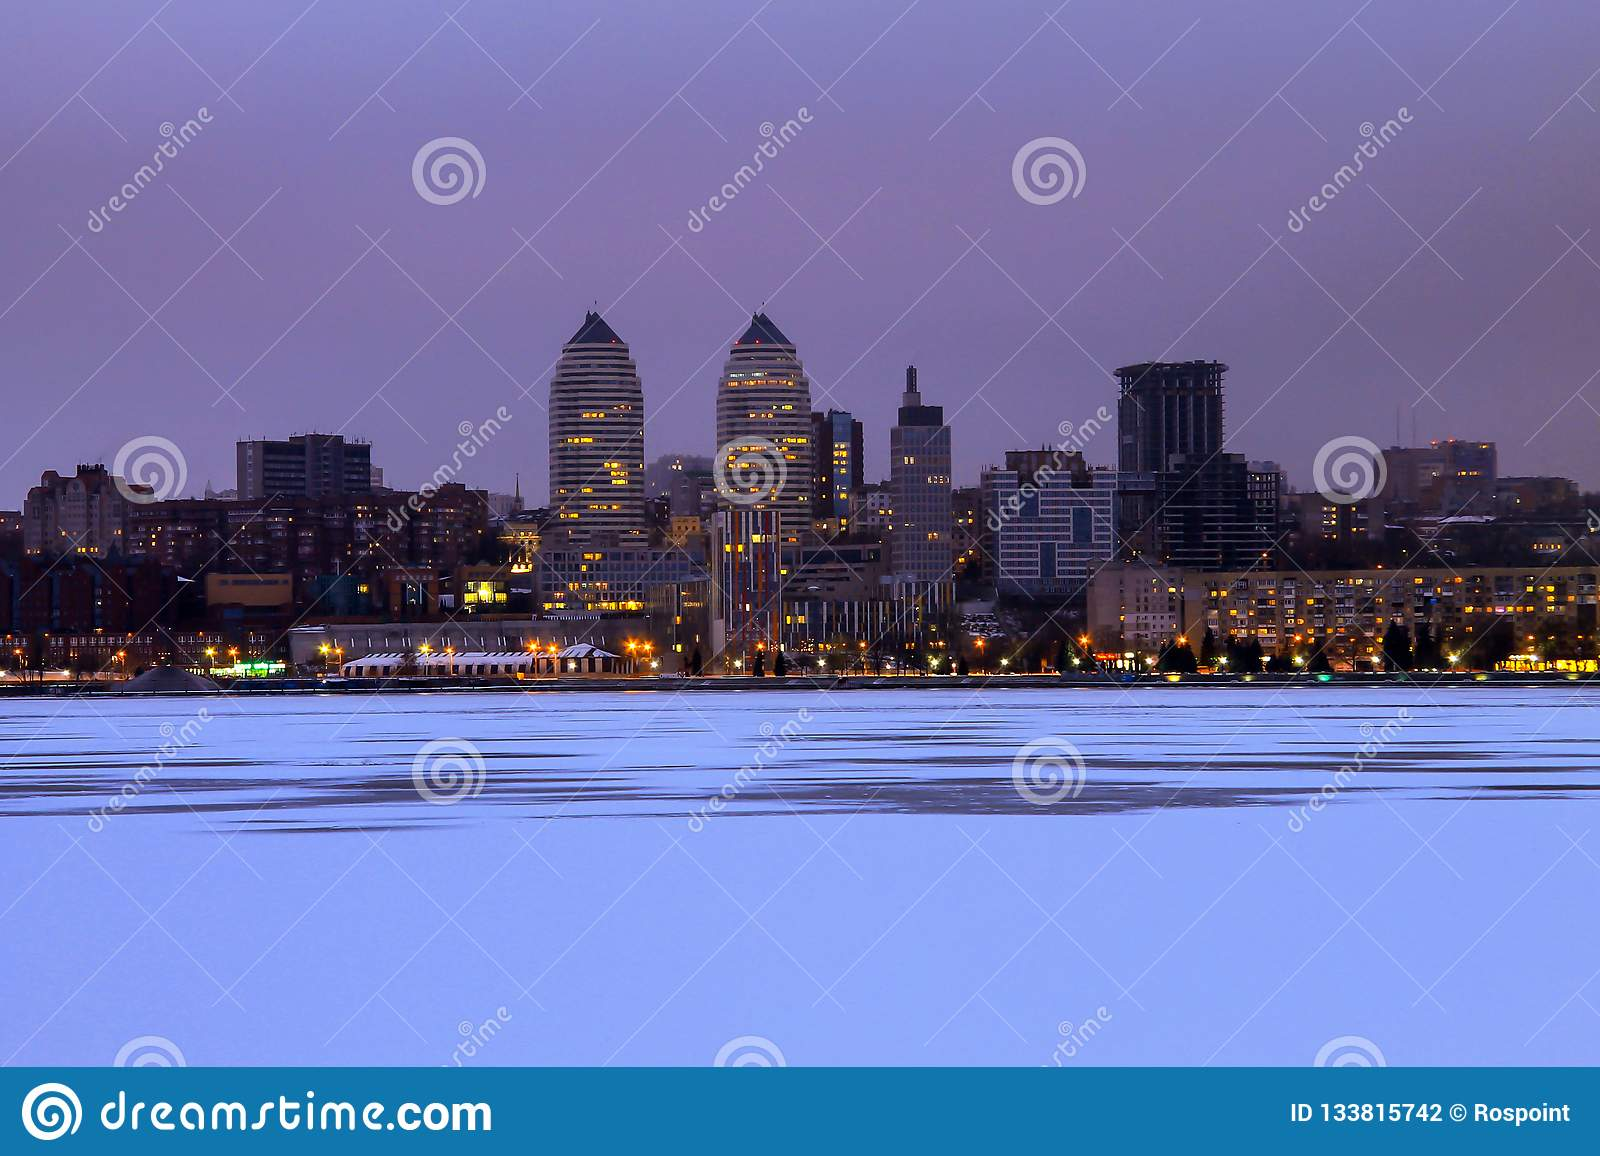 Beautiful winter view of the Dnepr city in the evening, the ice of the frozen Dnieper river is covered with fresh snow.